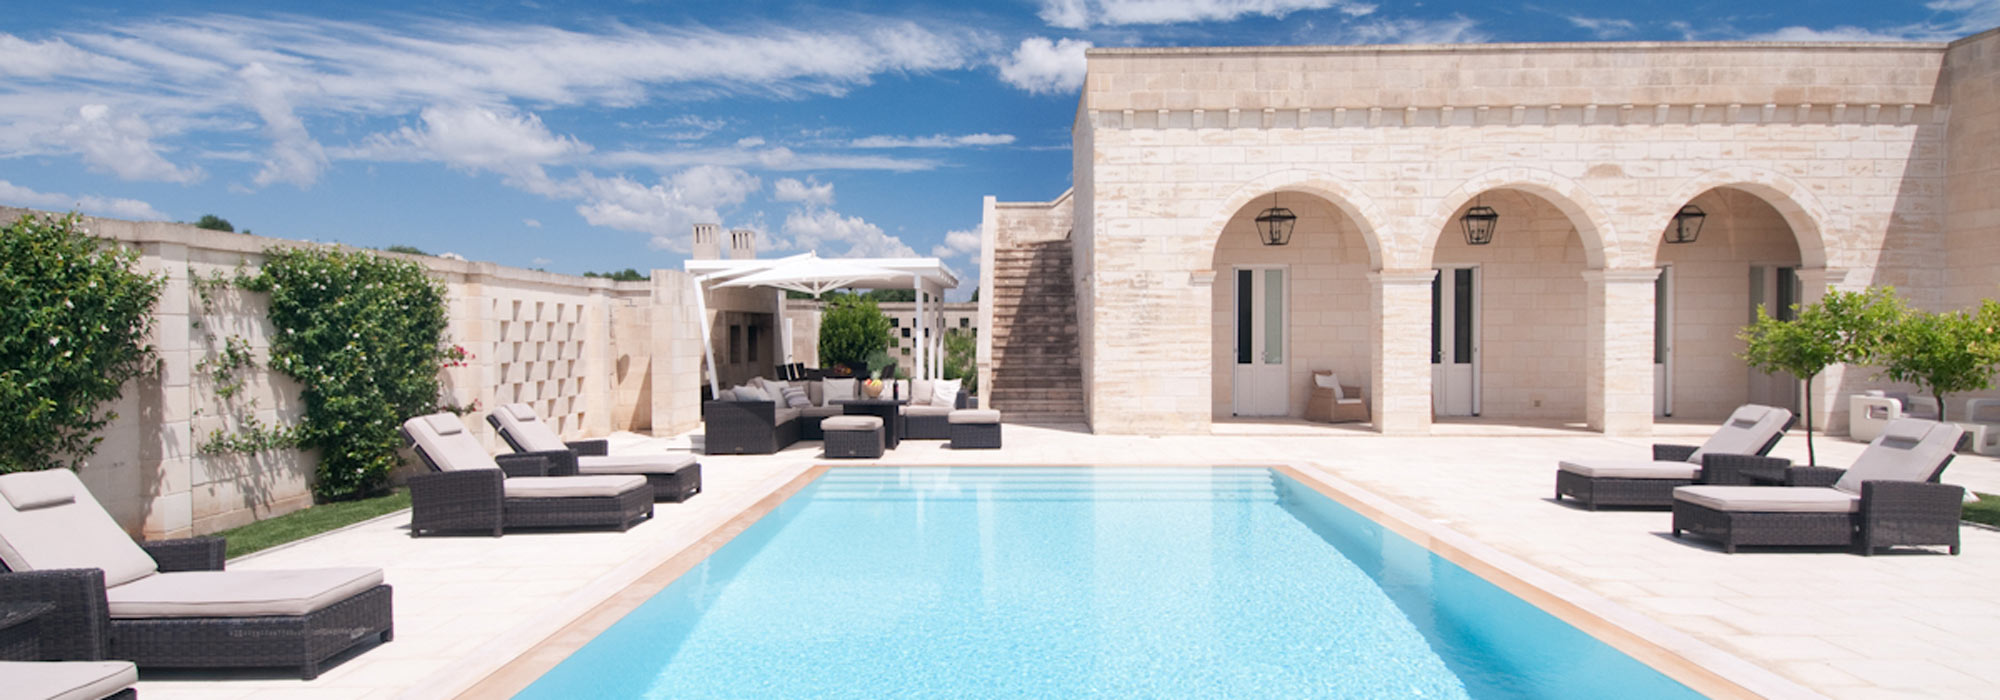 Masseria Zenzero – Cosy Luxury Villa Puglia – Sleeps 8